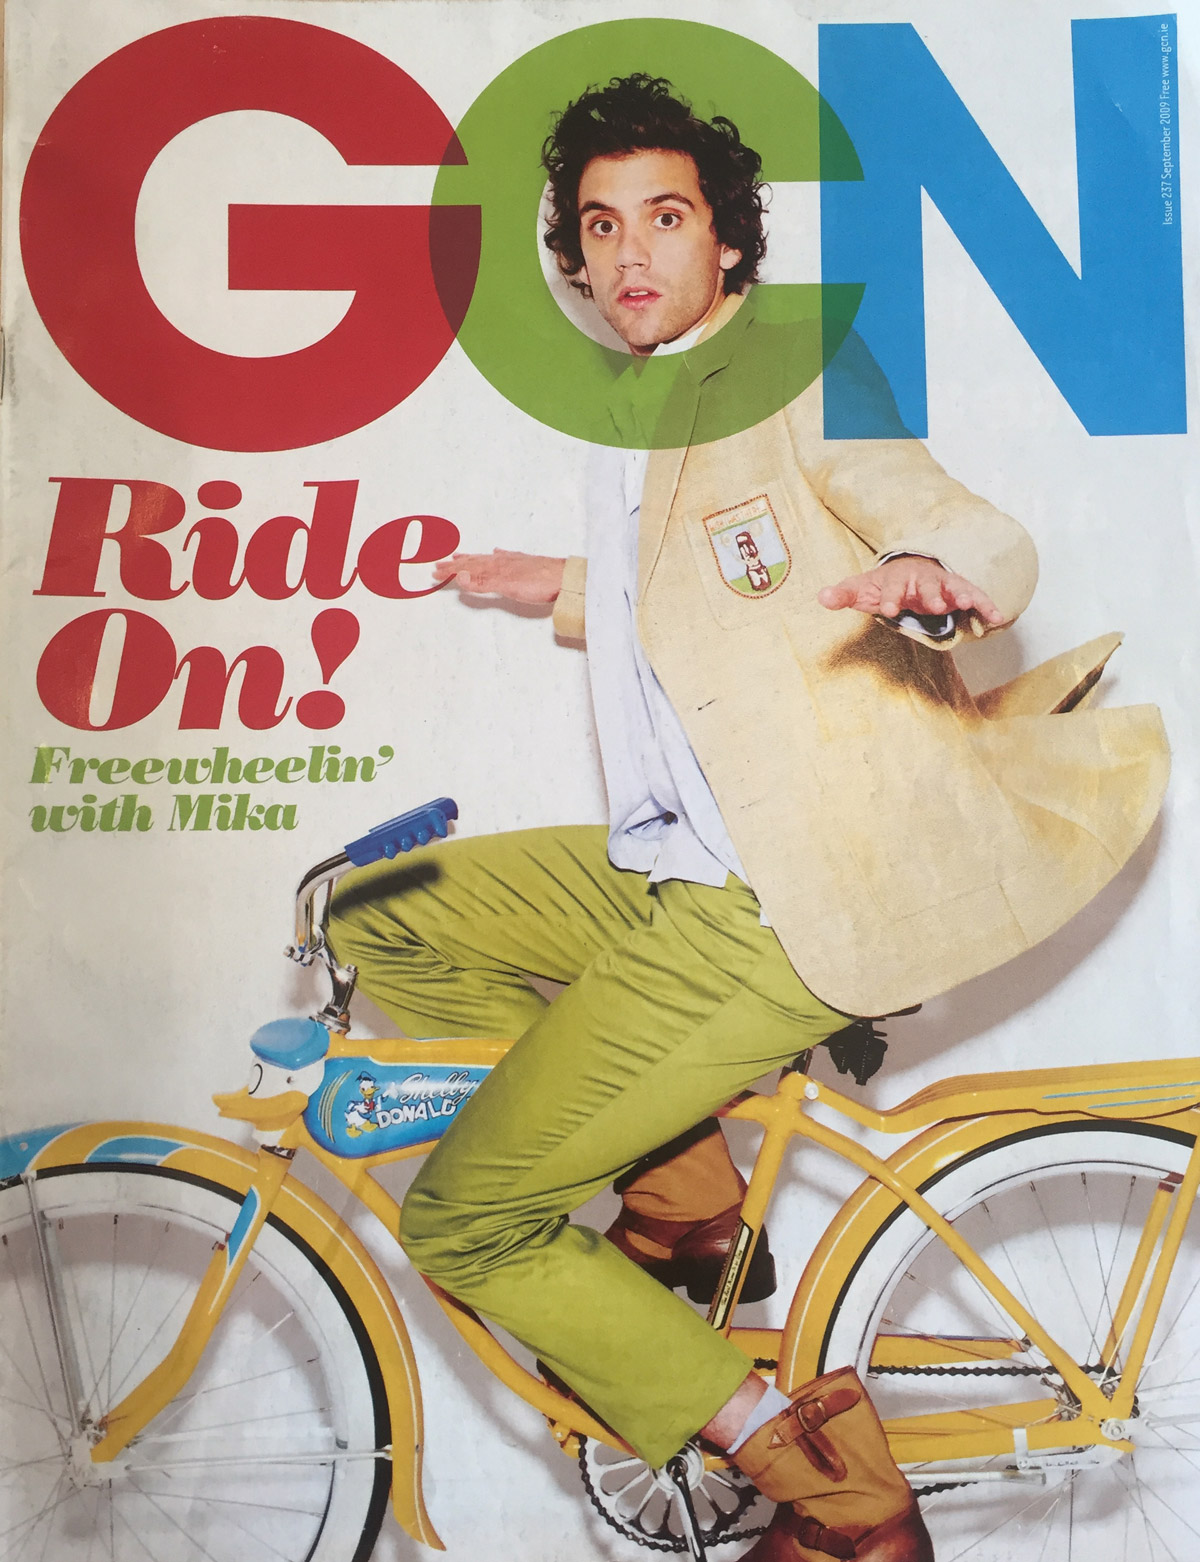 The 2009 Issue in the Evolution of GCN, Ireland's National LGBT Publication with Mika on the cover in lime green pants on a bicycle